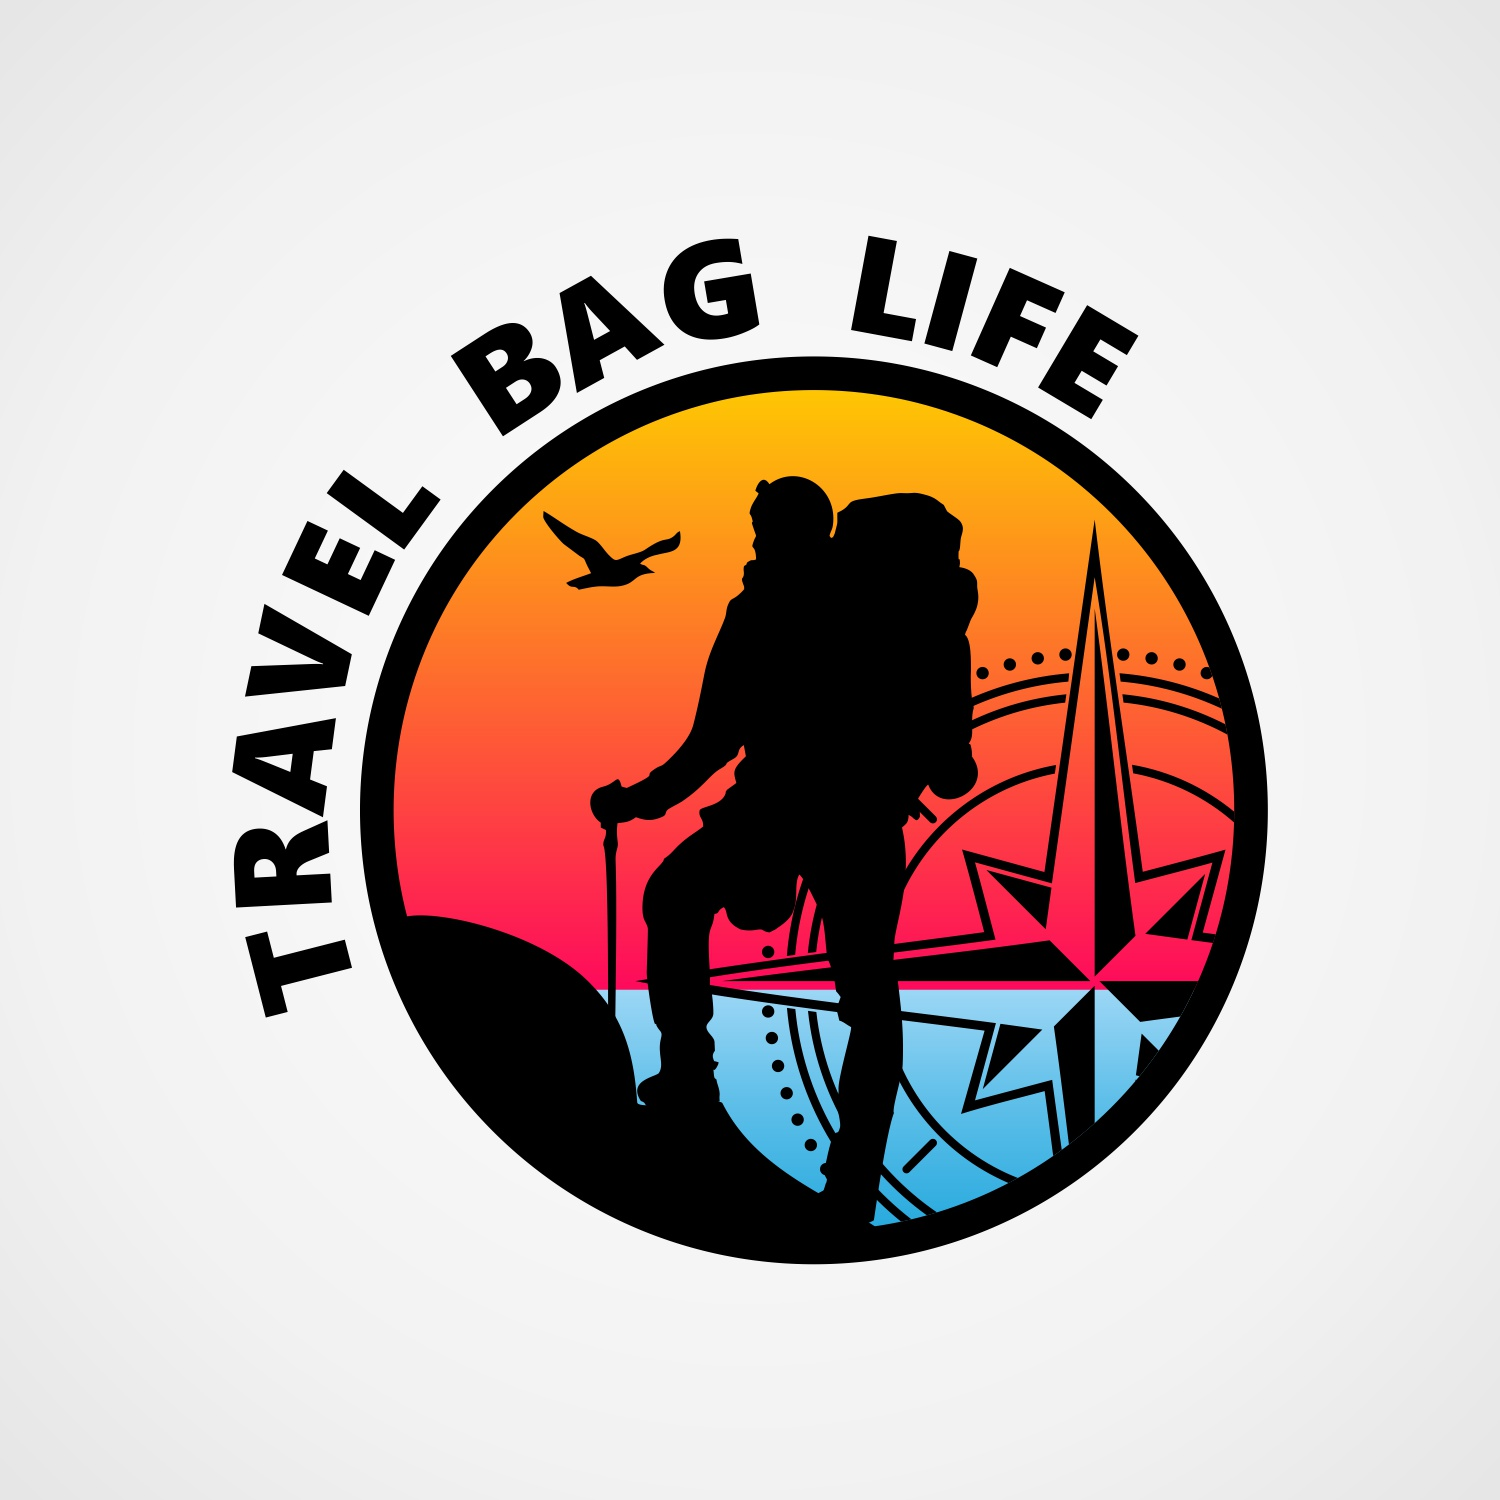 Logo for the Travel Bag Life by 	 ArtLex